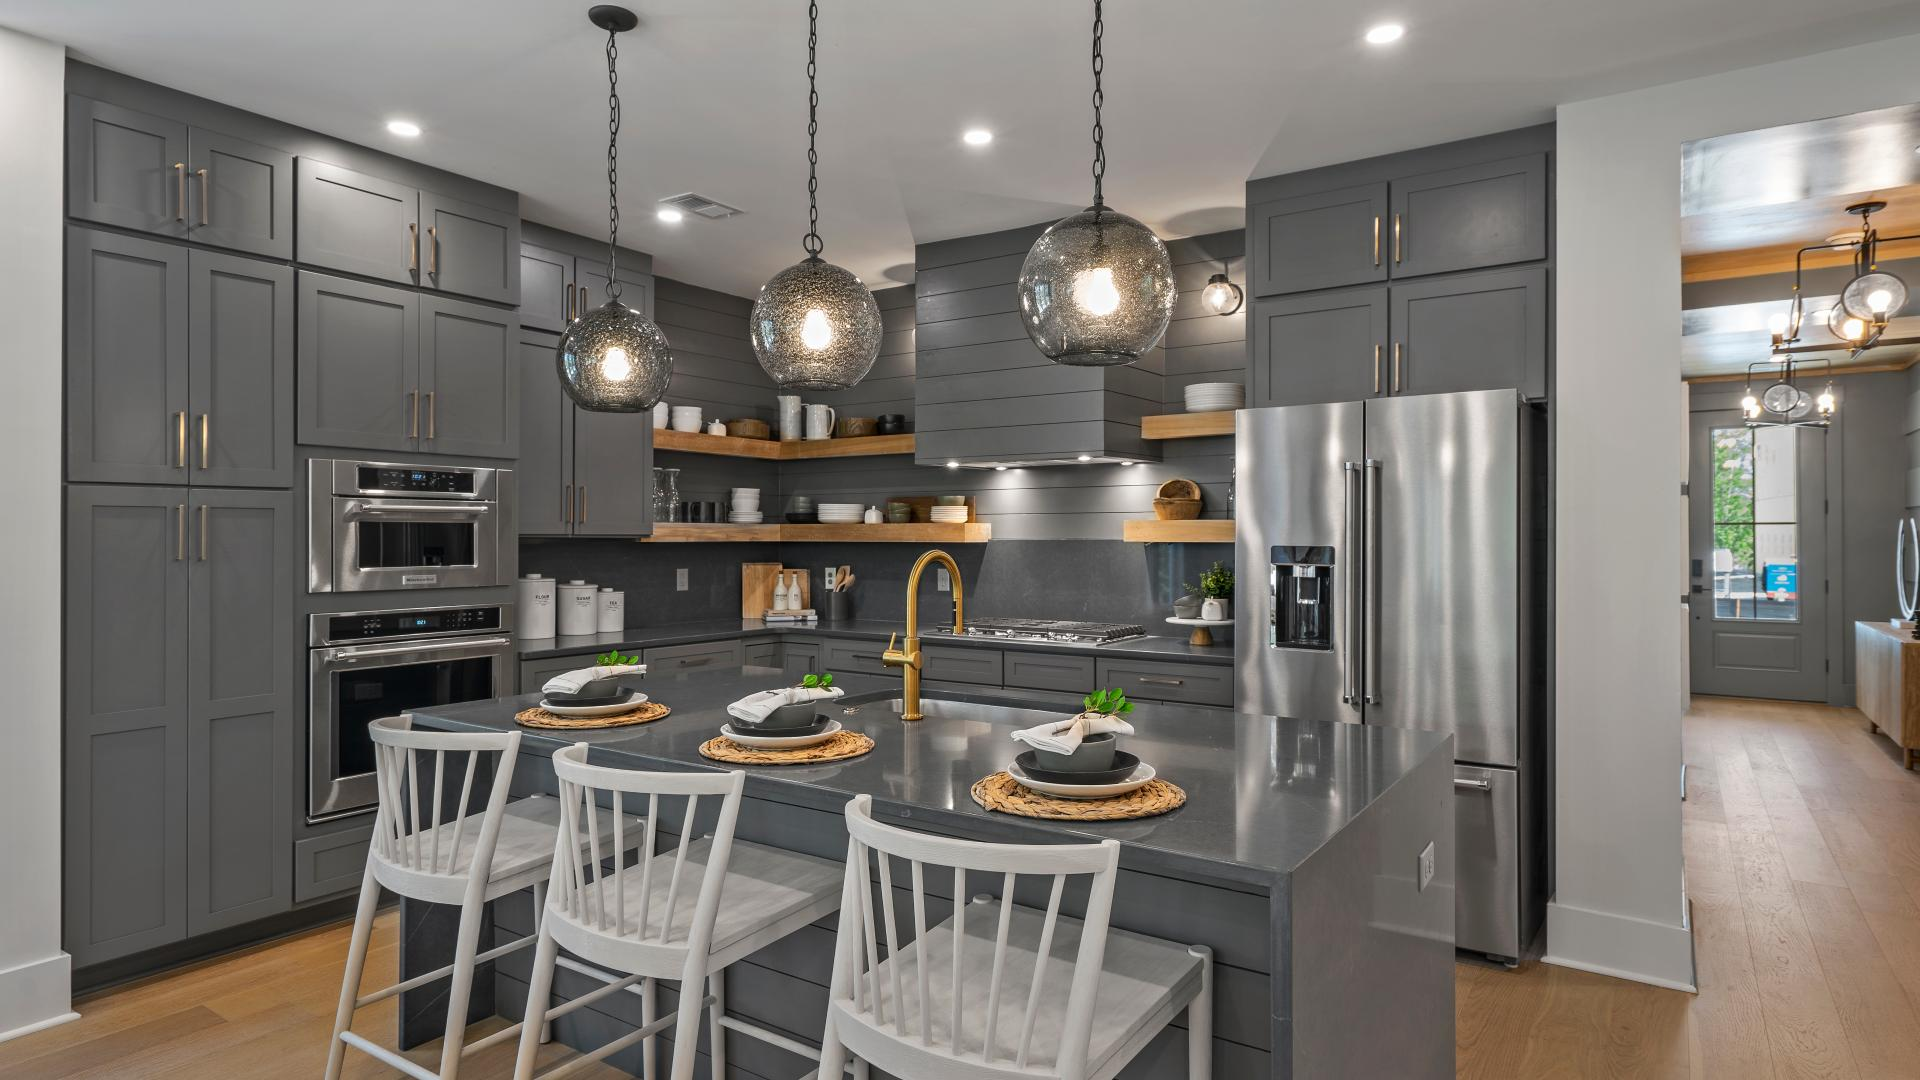 Stunning well-equipped kitchens with ample countertop and cabinet space